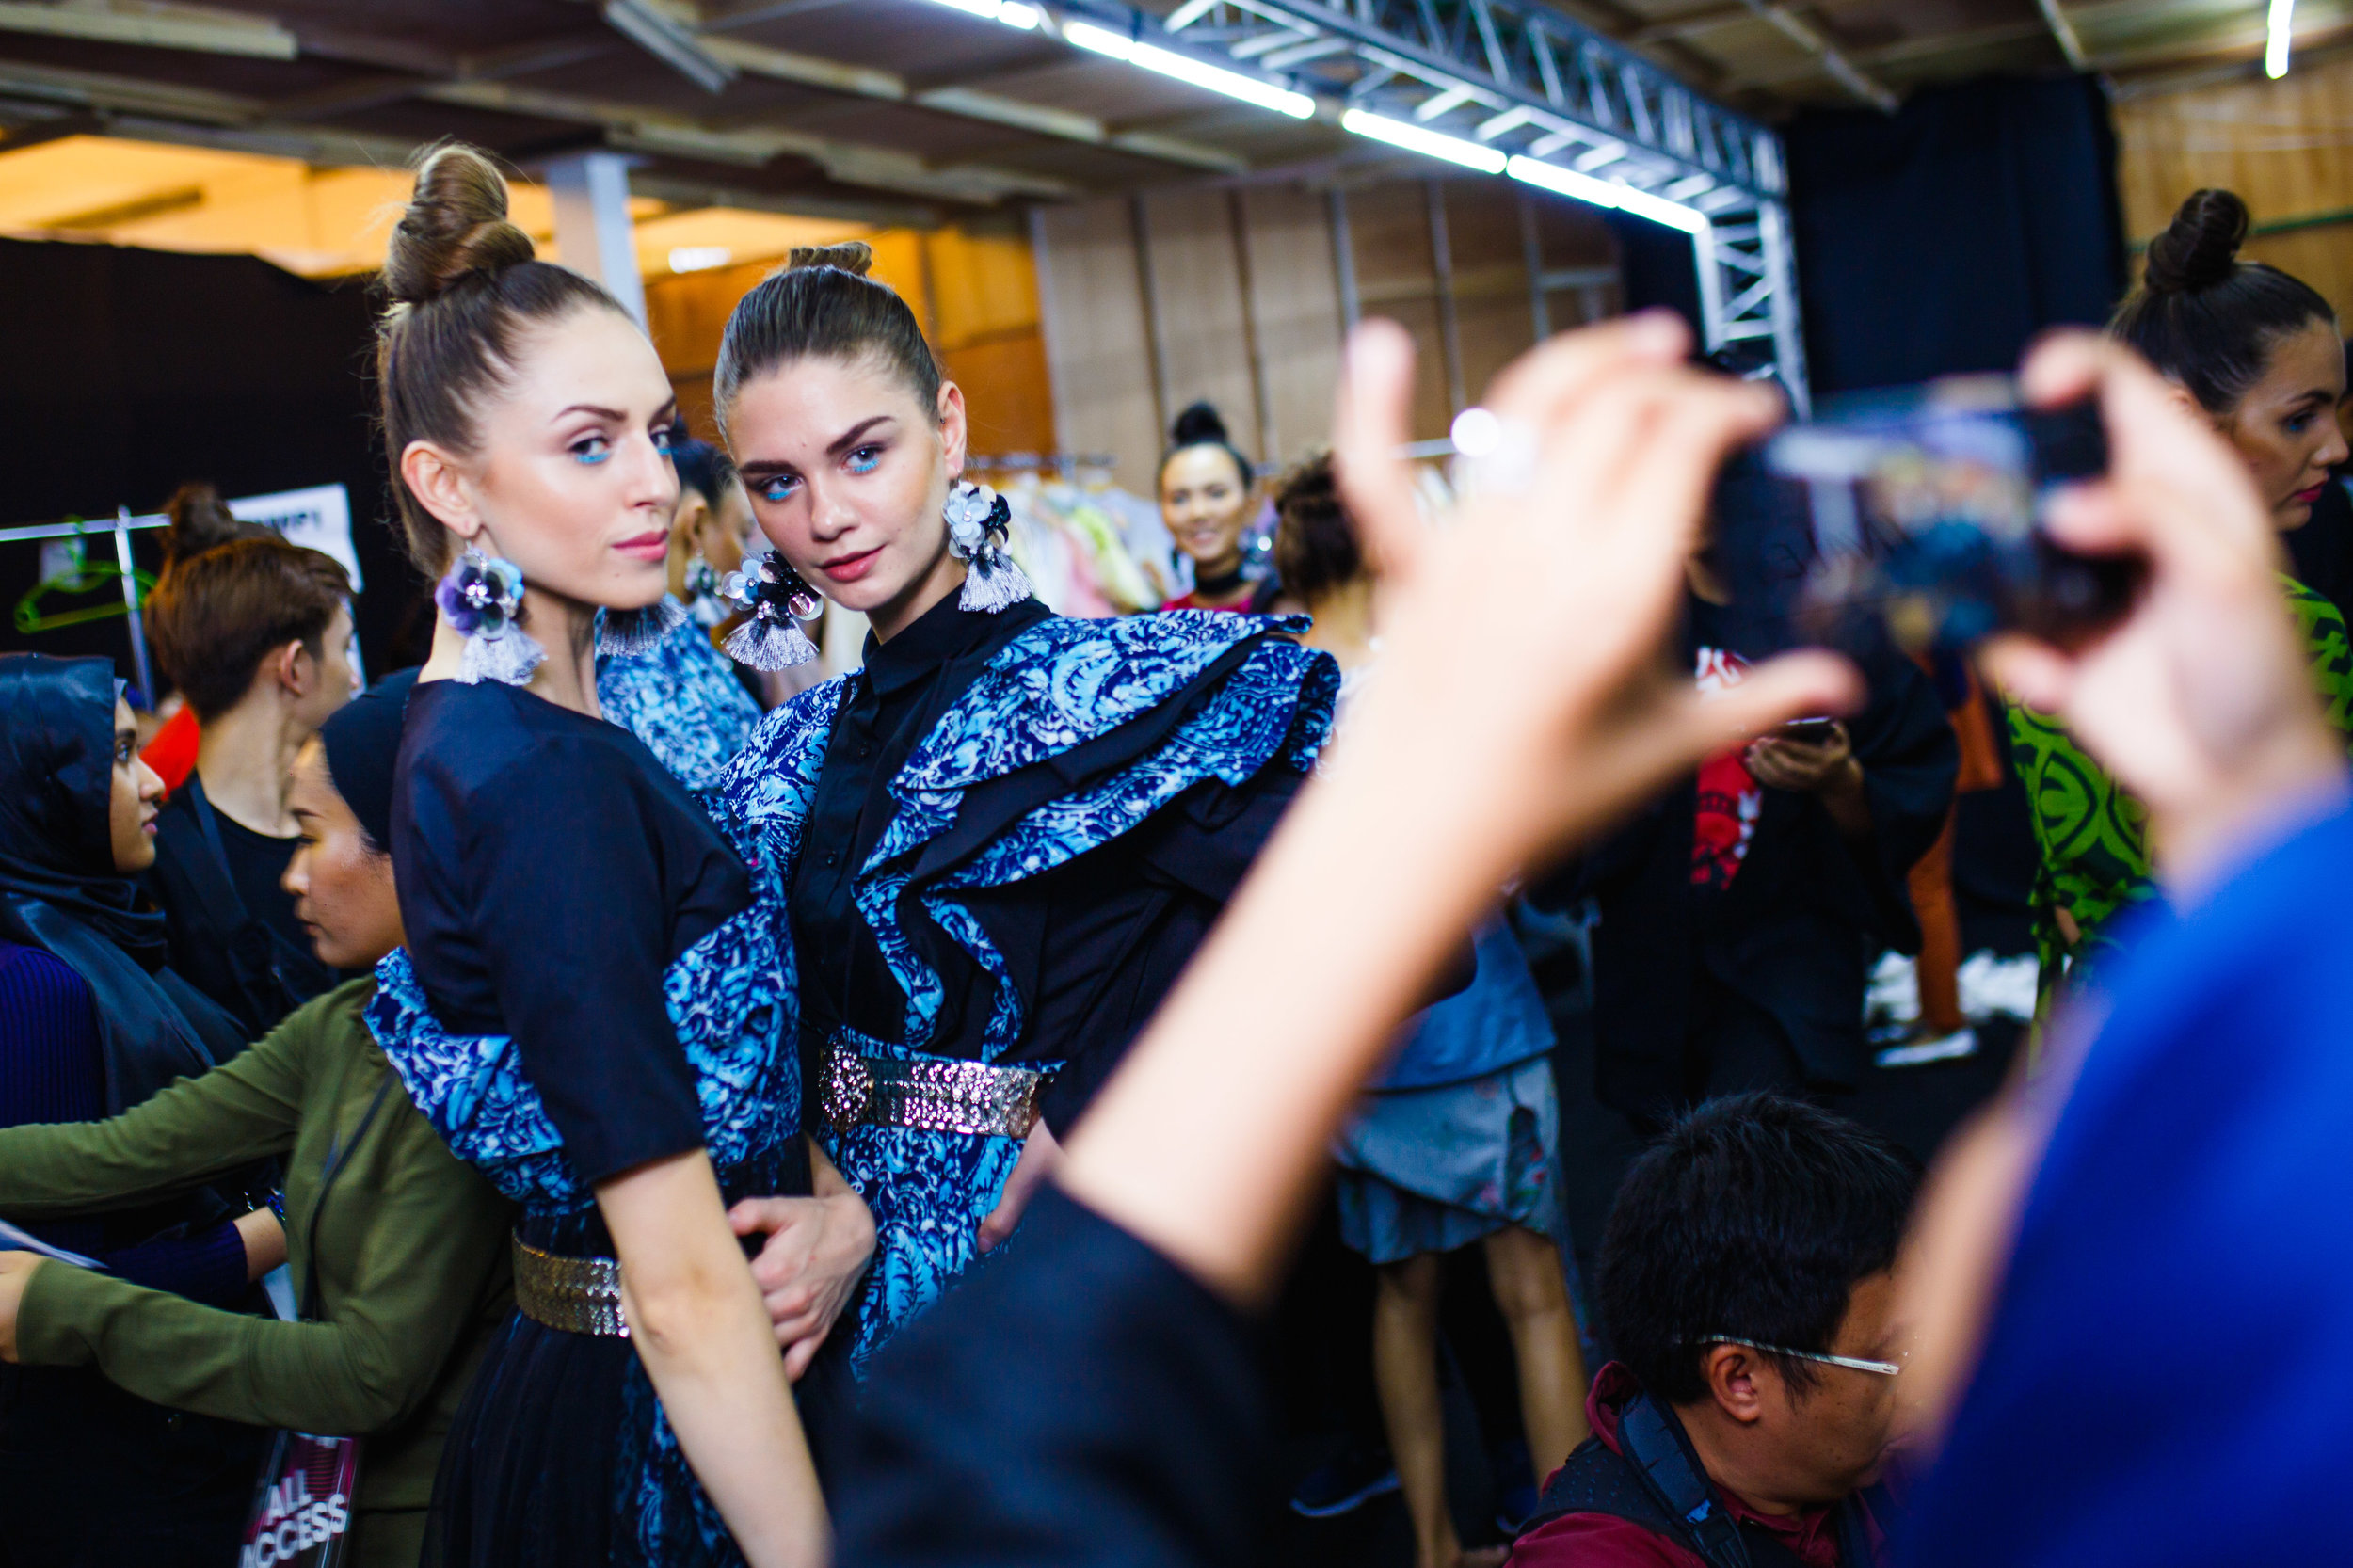 KLFW2018 - Day 1 - IMG_4849 - Photo by All Is Amazing.jpg